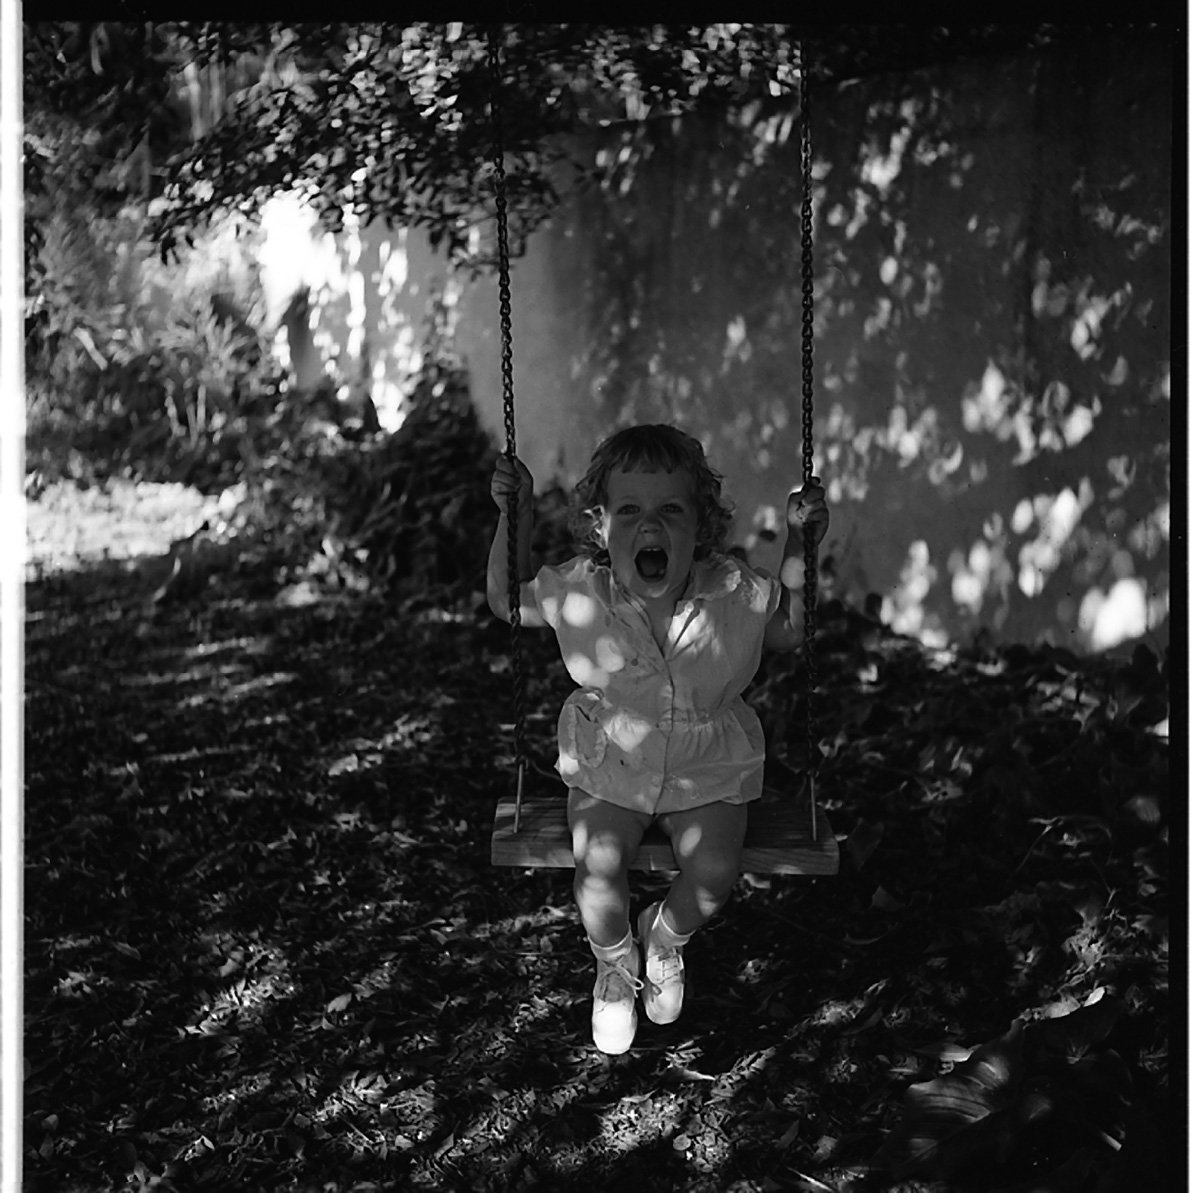 Vivian Maier, Little Girl Swinging in Shadows, Los Angeles, 1955